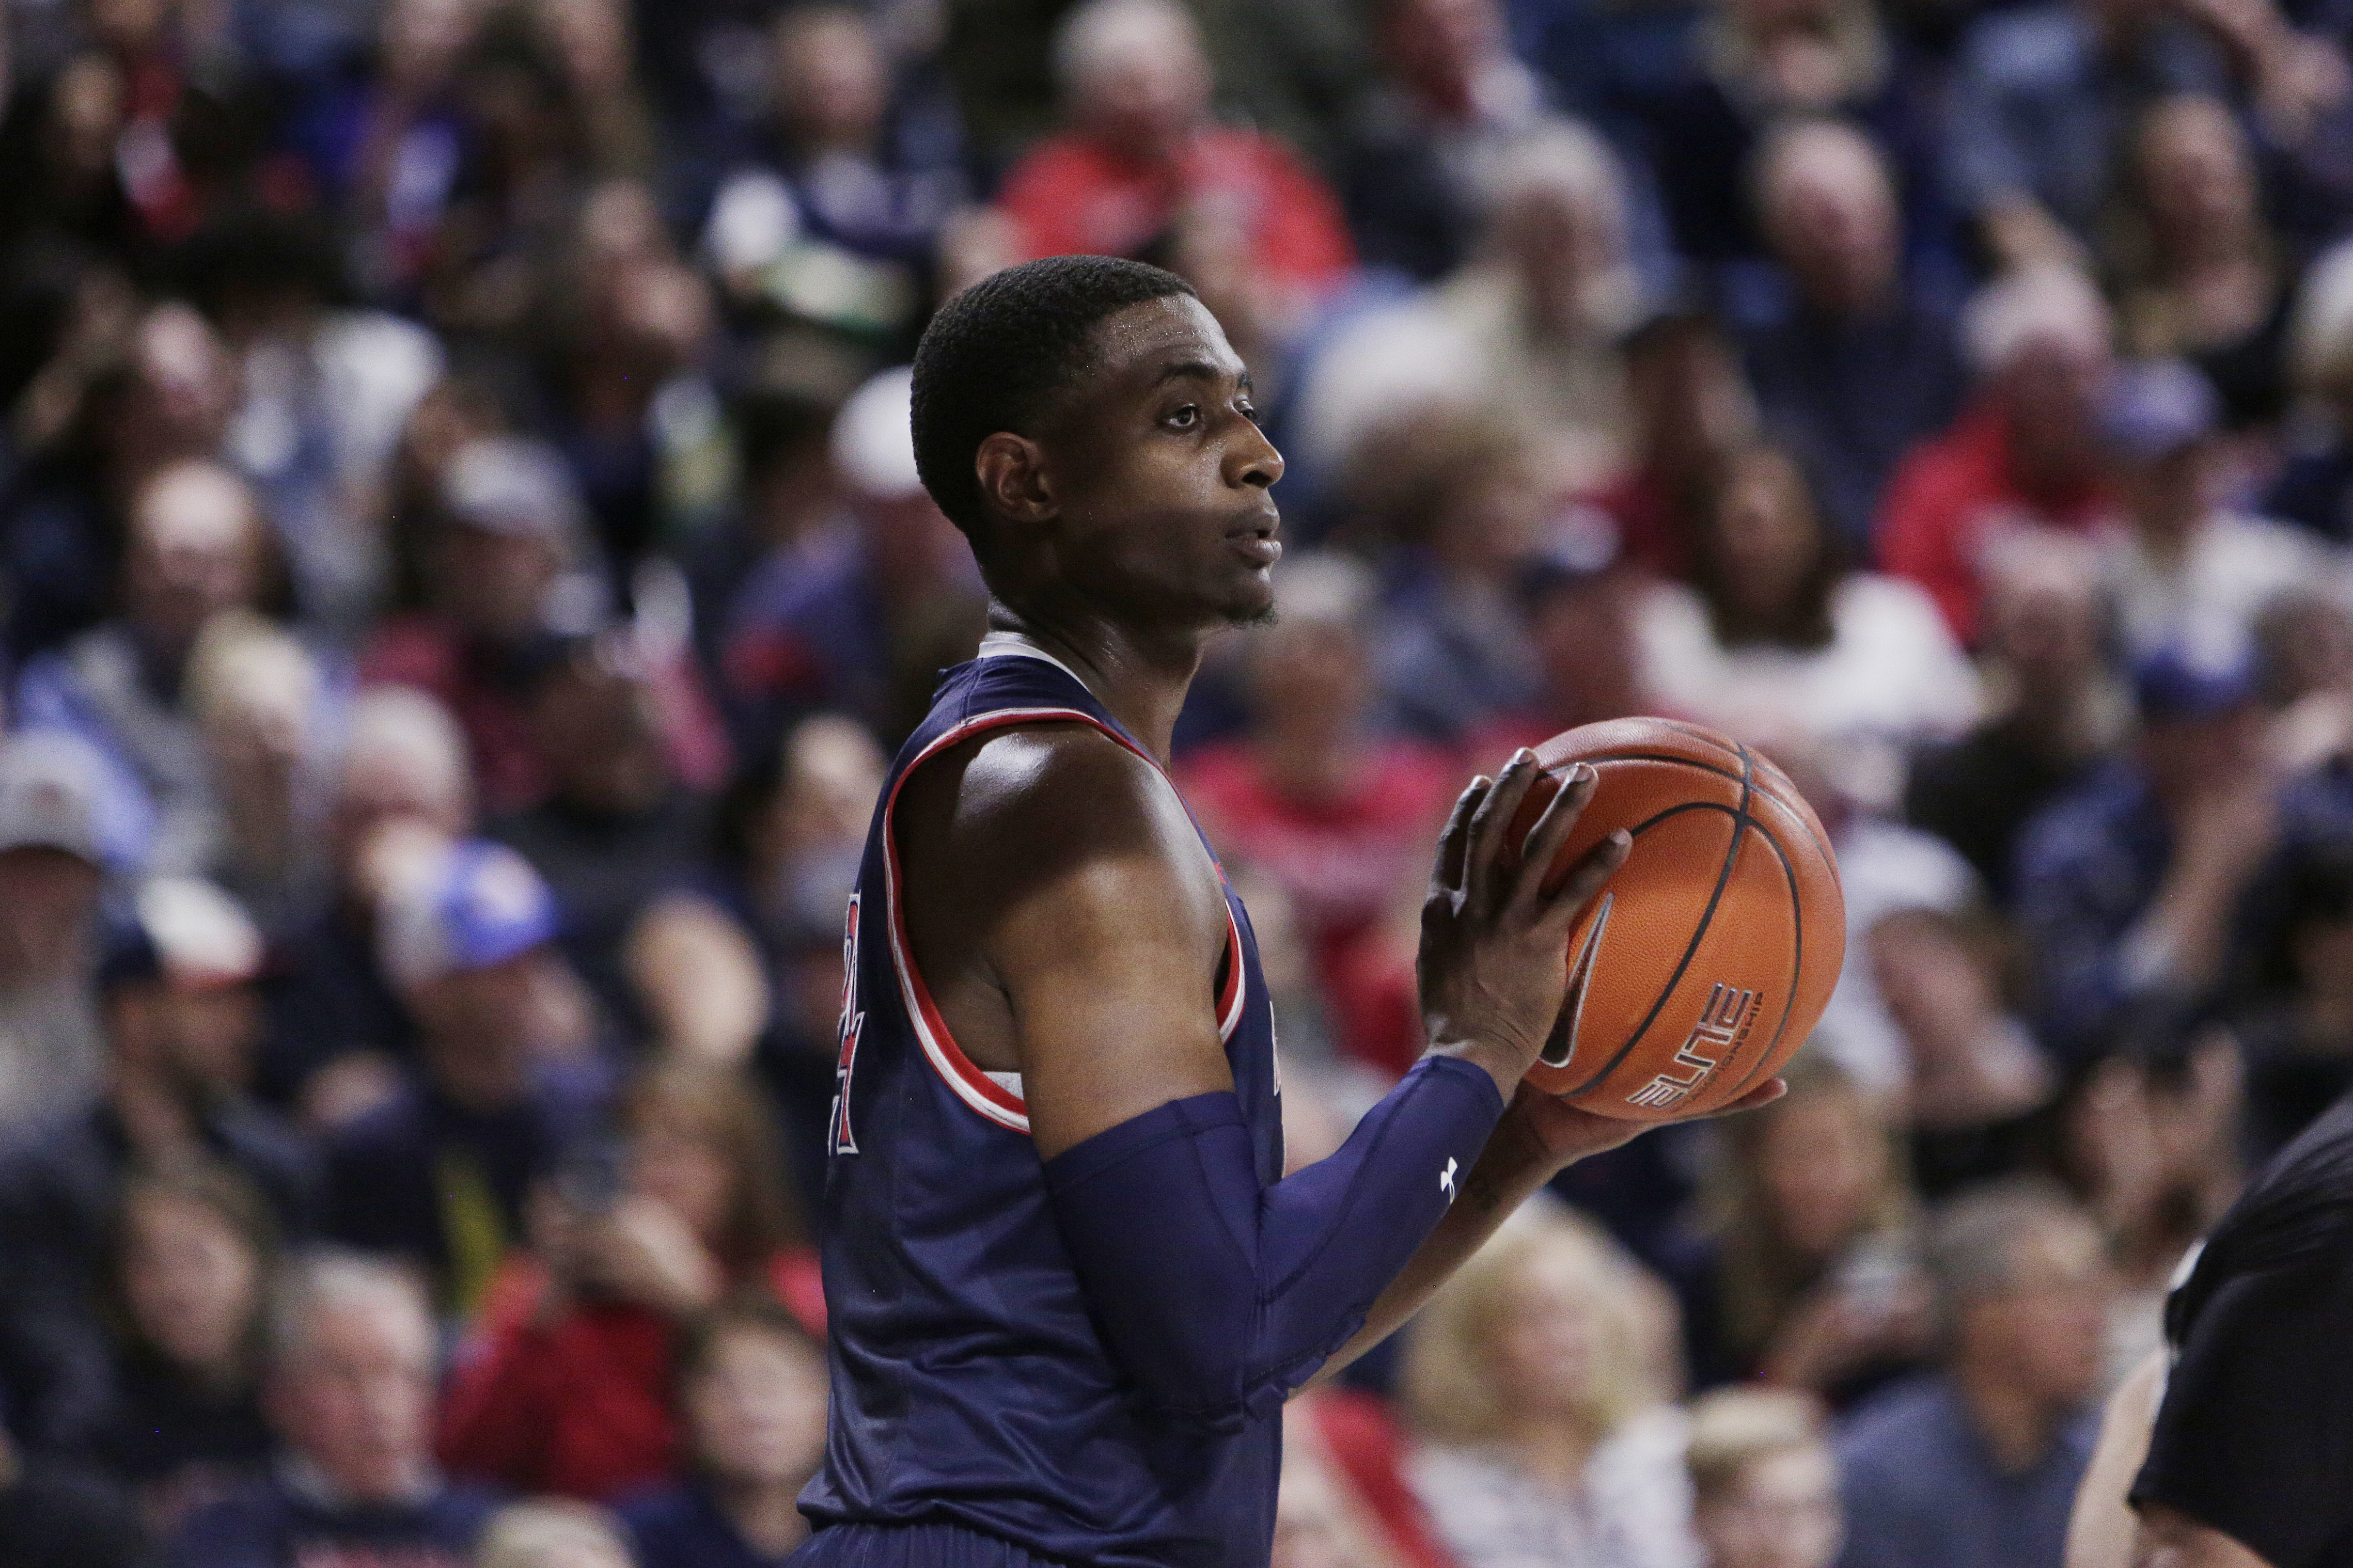 Saint Mary's forward Malik Fitts prepares to inbound the ball